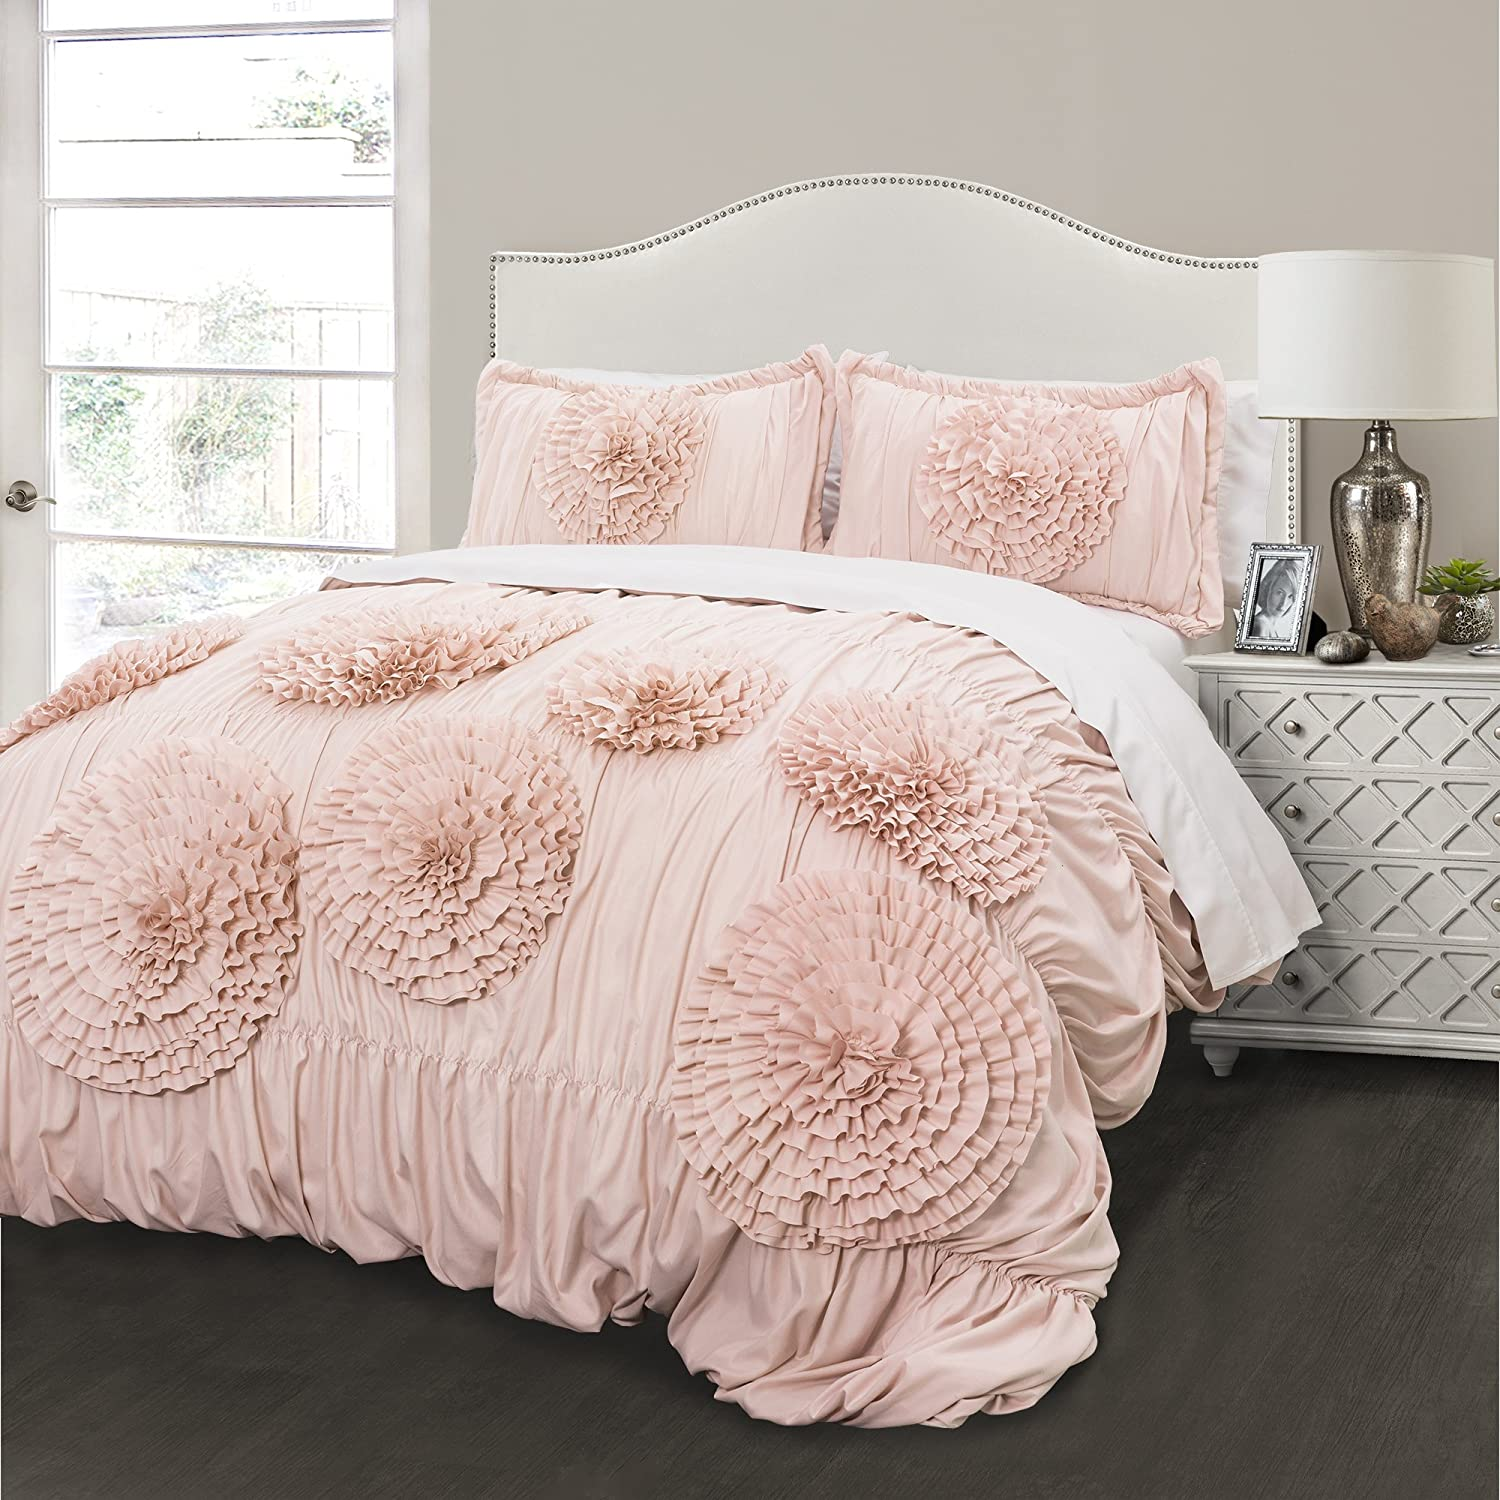 beddingpale photos dusty bedding duvet rose comforter pink bedroom dreaded grey child and pale light concept